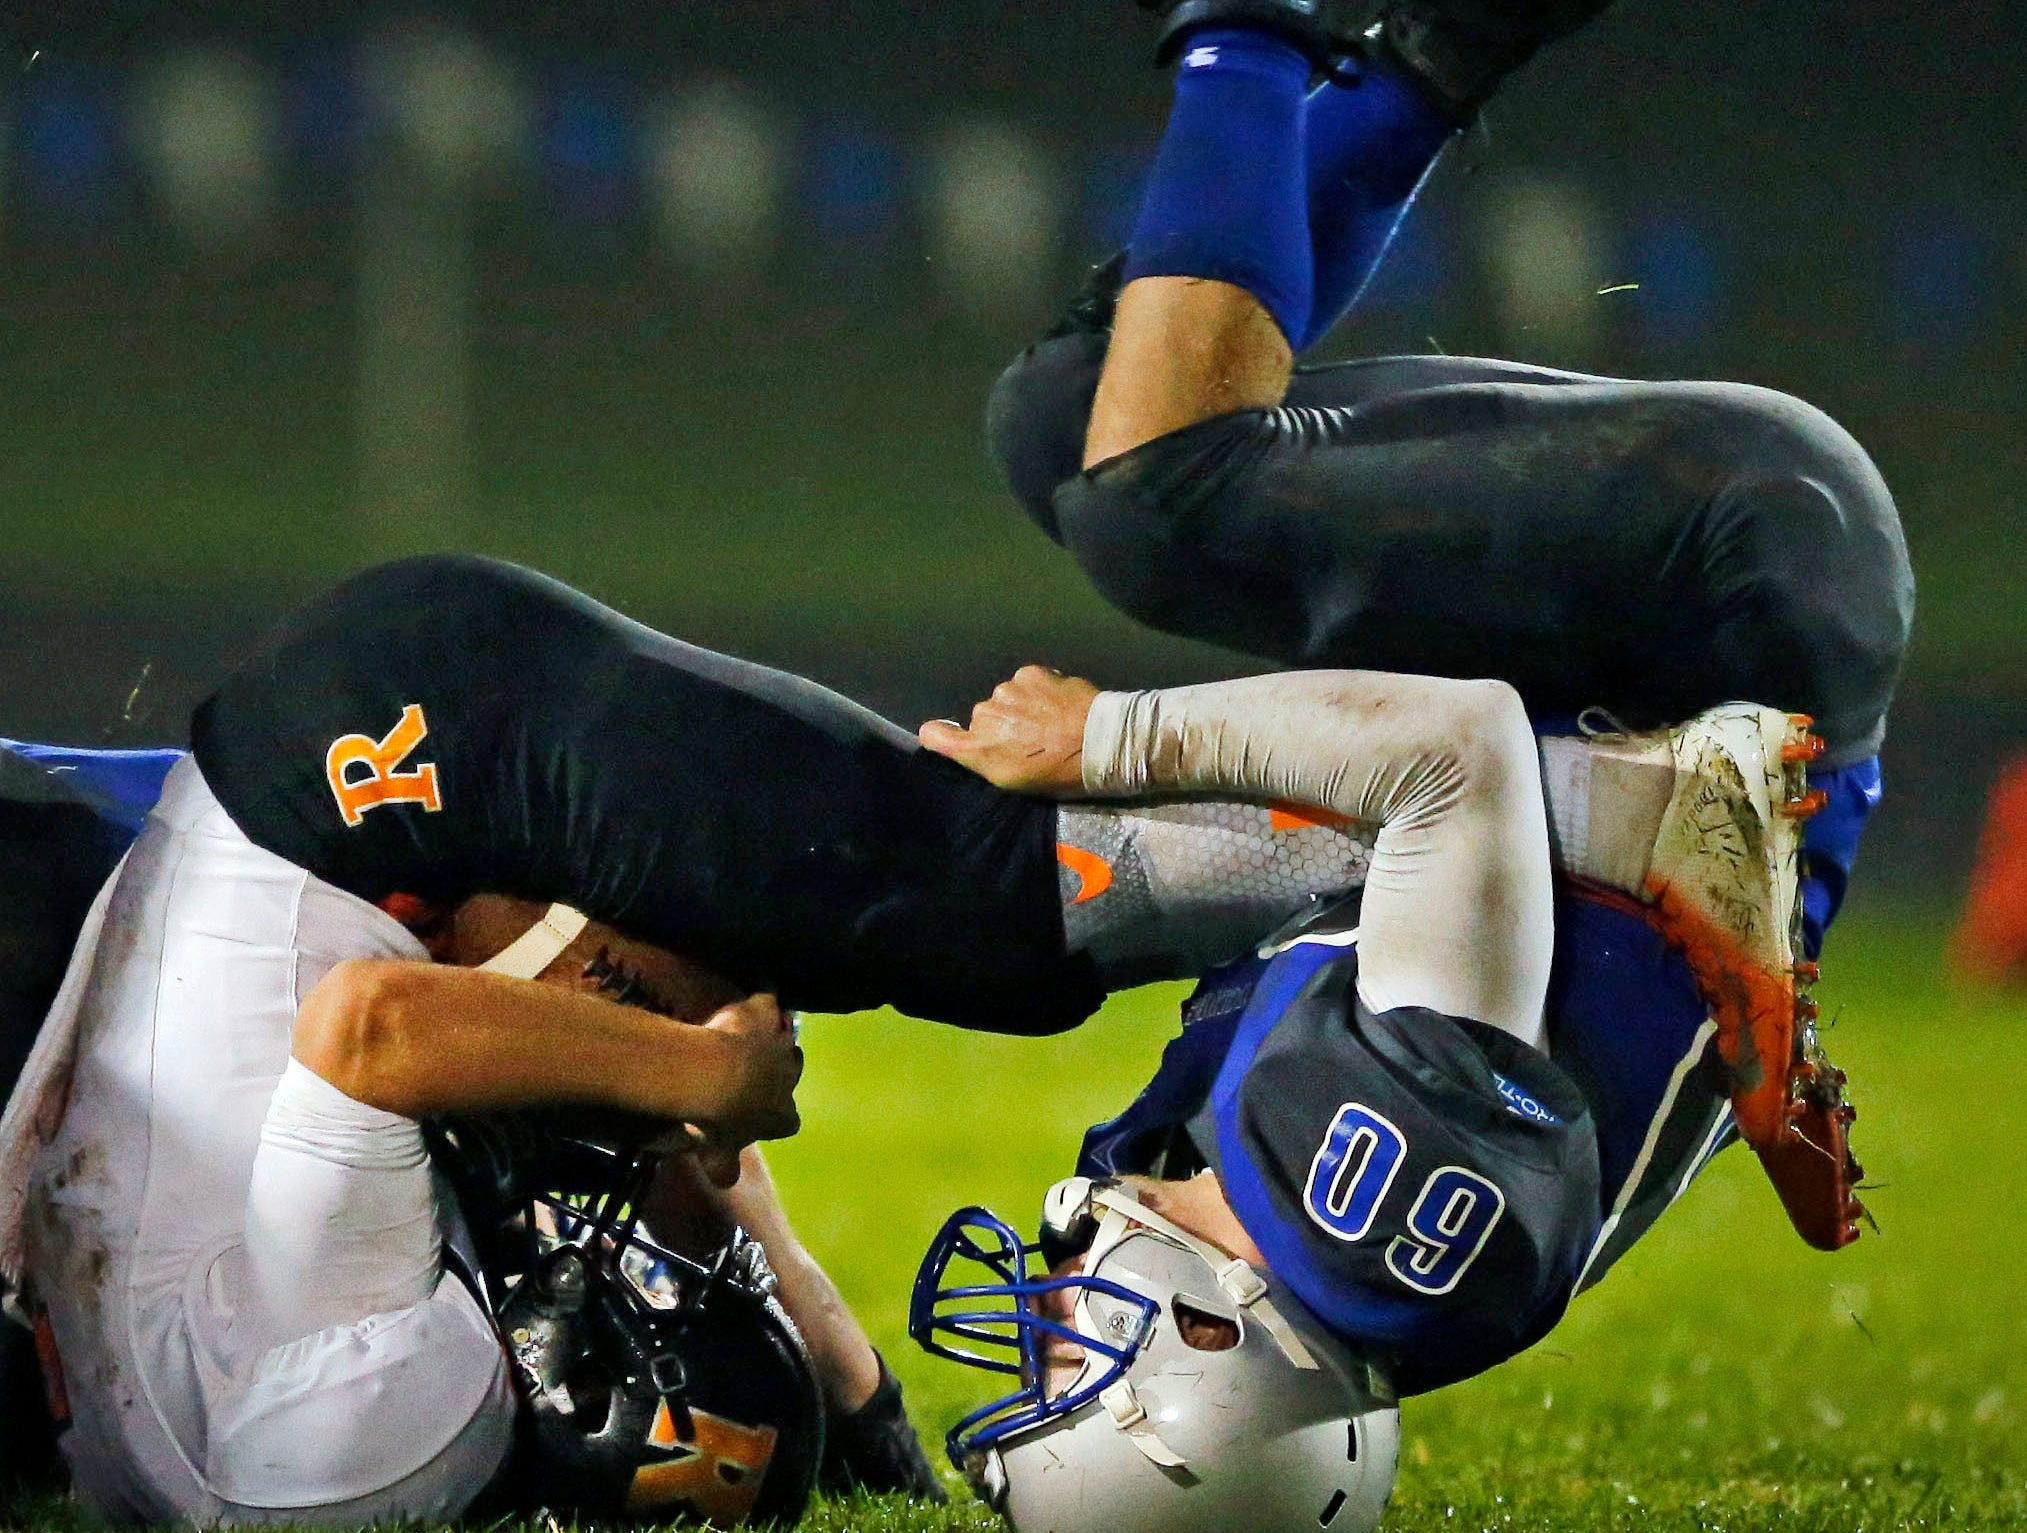 Rece Sweere, right, of Hilbert tackles Chris Jentges of Cedar Grove-Belgium in a game for the Big East Conference title Friday, October 5, 2018, at Hilbert High School in Hilbert, Wis.